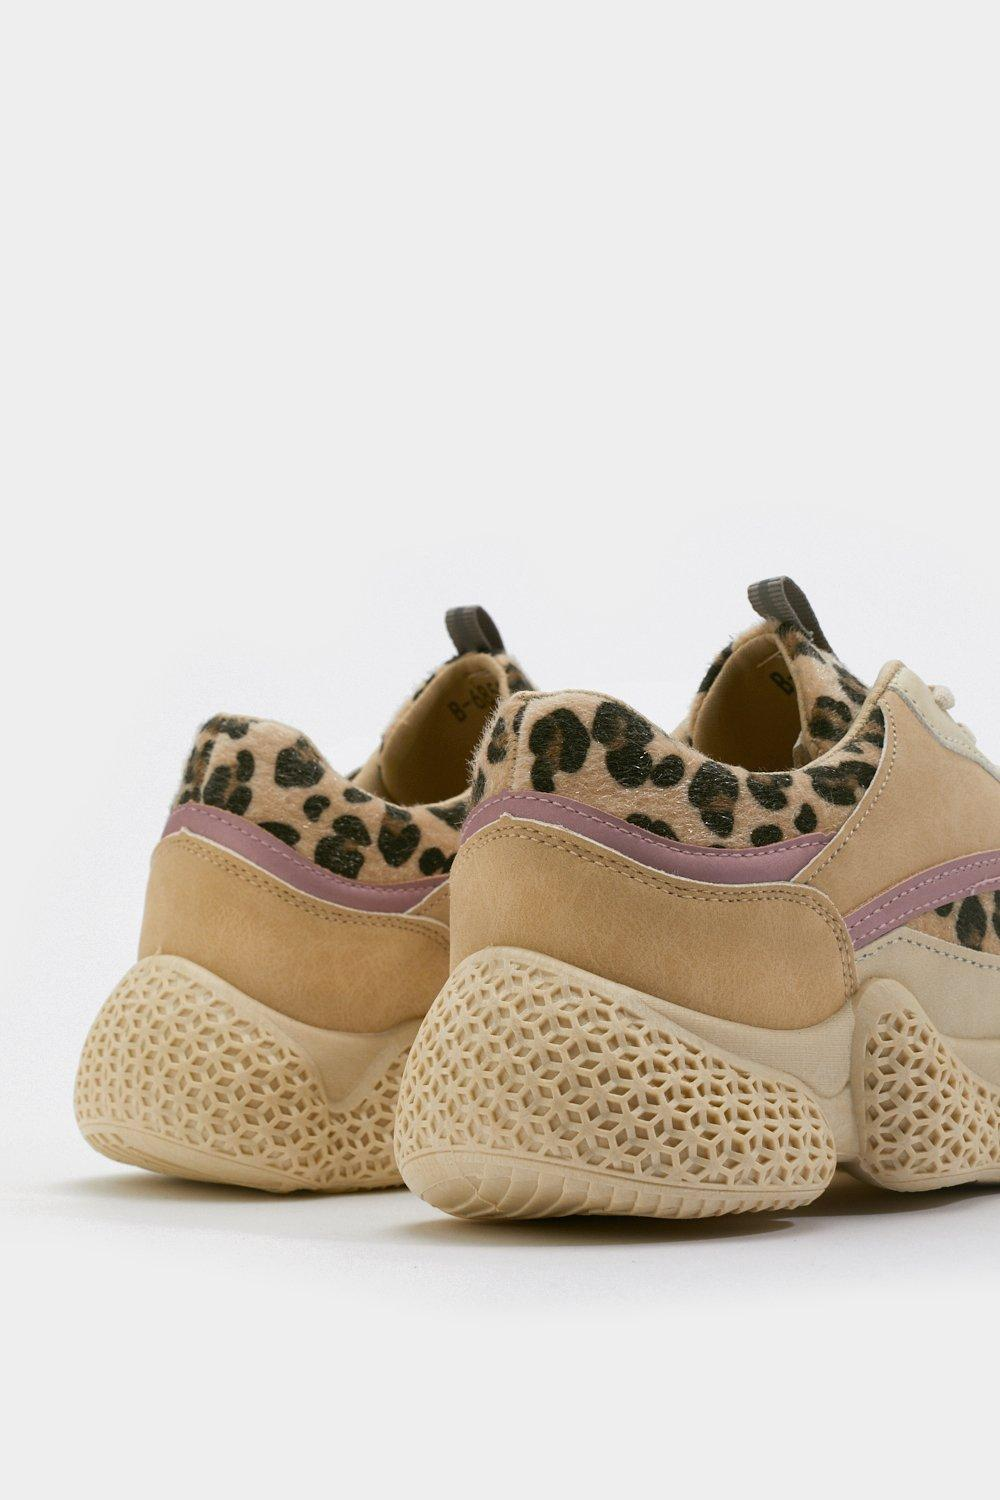 29edacf76 Pick Up the Pace Leopard Chunky Sneakers | Shop Clothes at Nasty Gal!